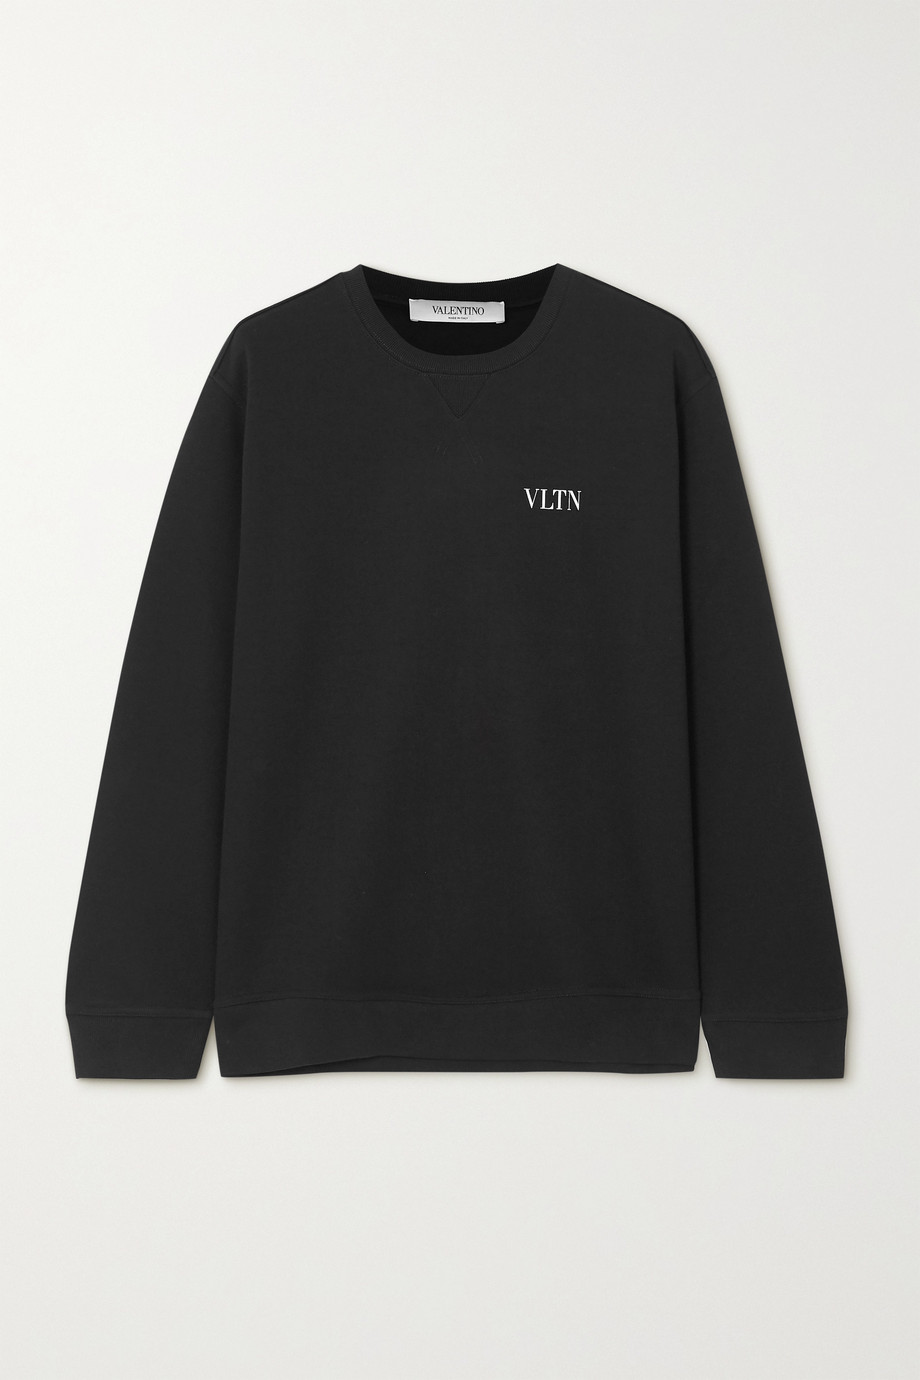 VALENTINO Printed cotton-blend jersey sweatshirt